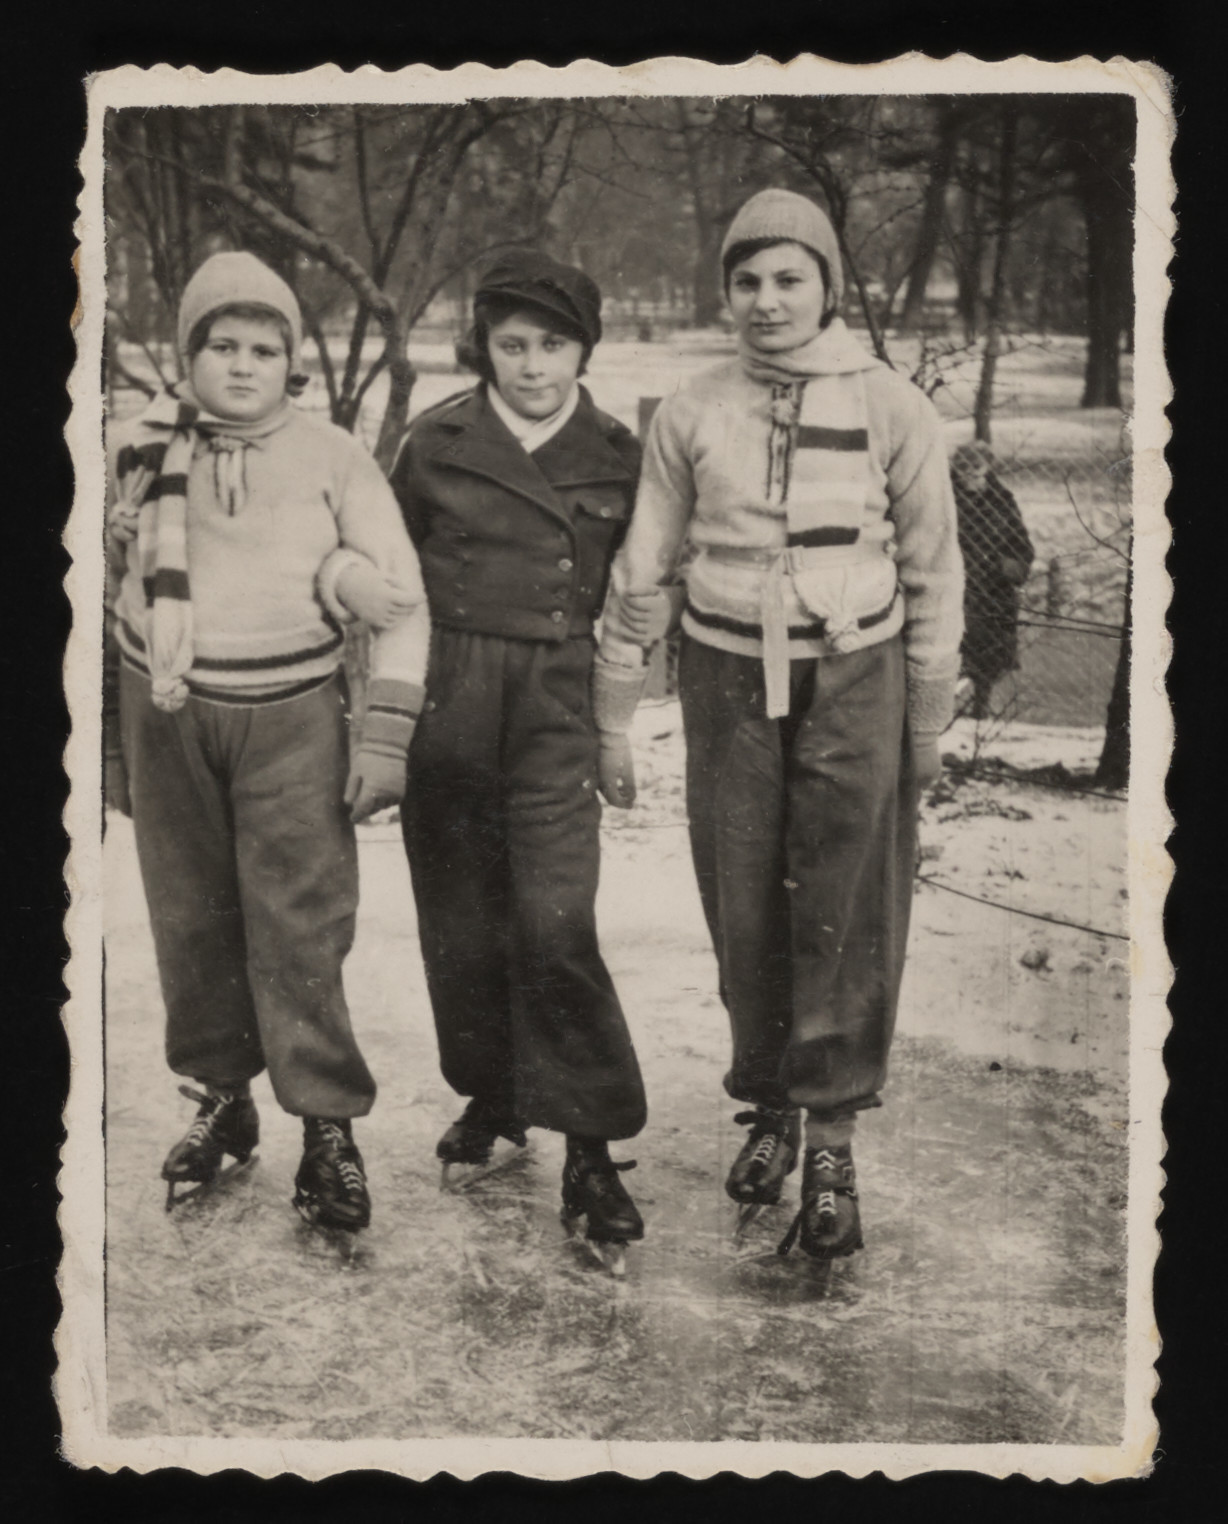 Three Jewish teenagers skate on a pond during their winter vacation in Otwock, Poland.    Pictured from left to right are Ziuta Szczecinska, Zosia Perec, and Gina Szczecinska.  Ziuta and Gina are the donor's cousins and Zosia is her best friend.